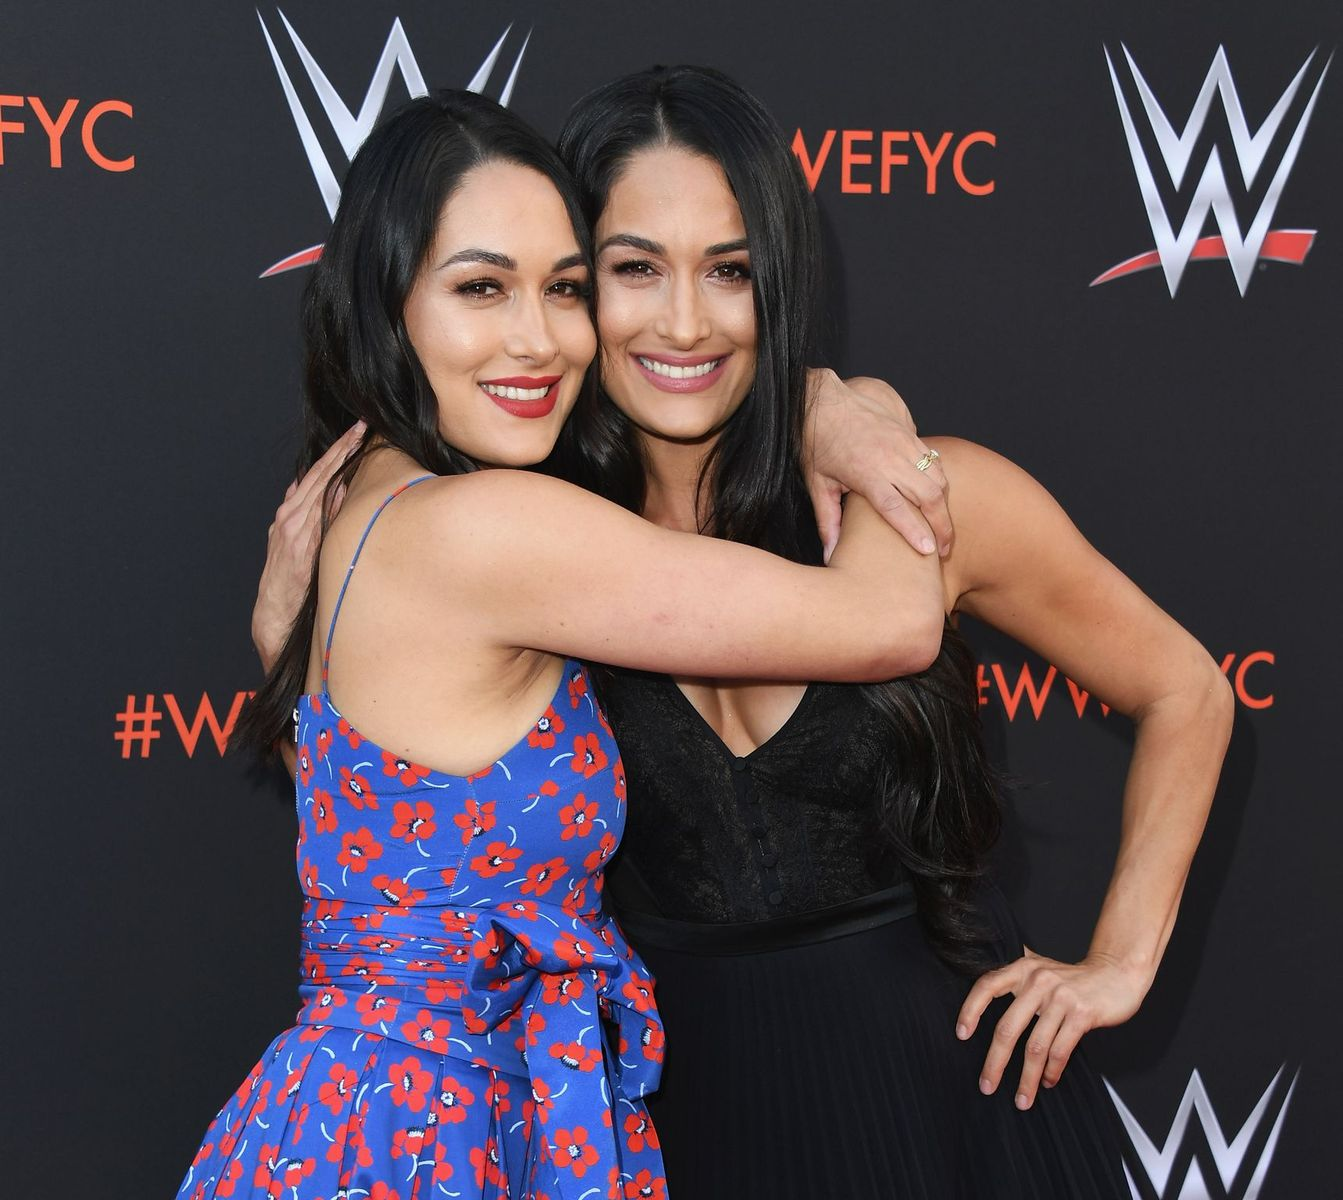 """Brie and Nikki Bella atWWE's First-Ever Emmy """"For Your Consideration"""" event on June 6, 2018, in North Hollywood, California 